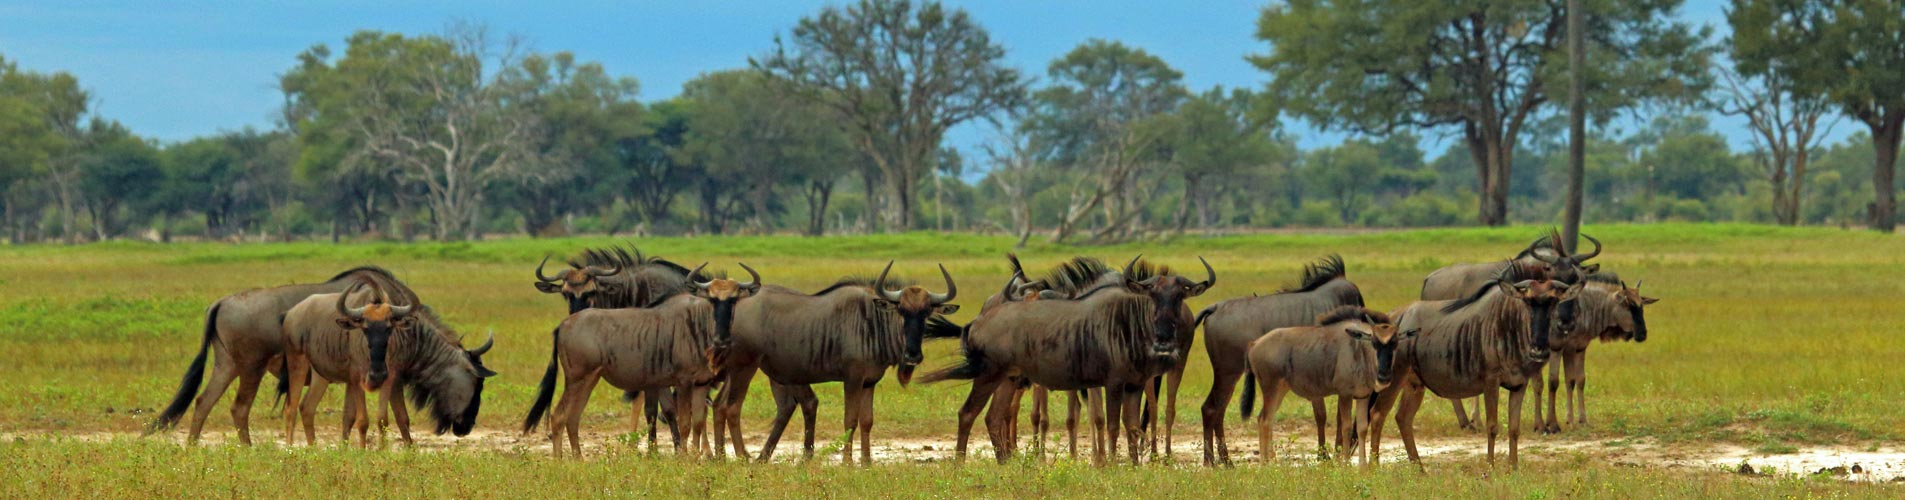 Wildebeest in Zimbabwe